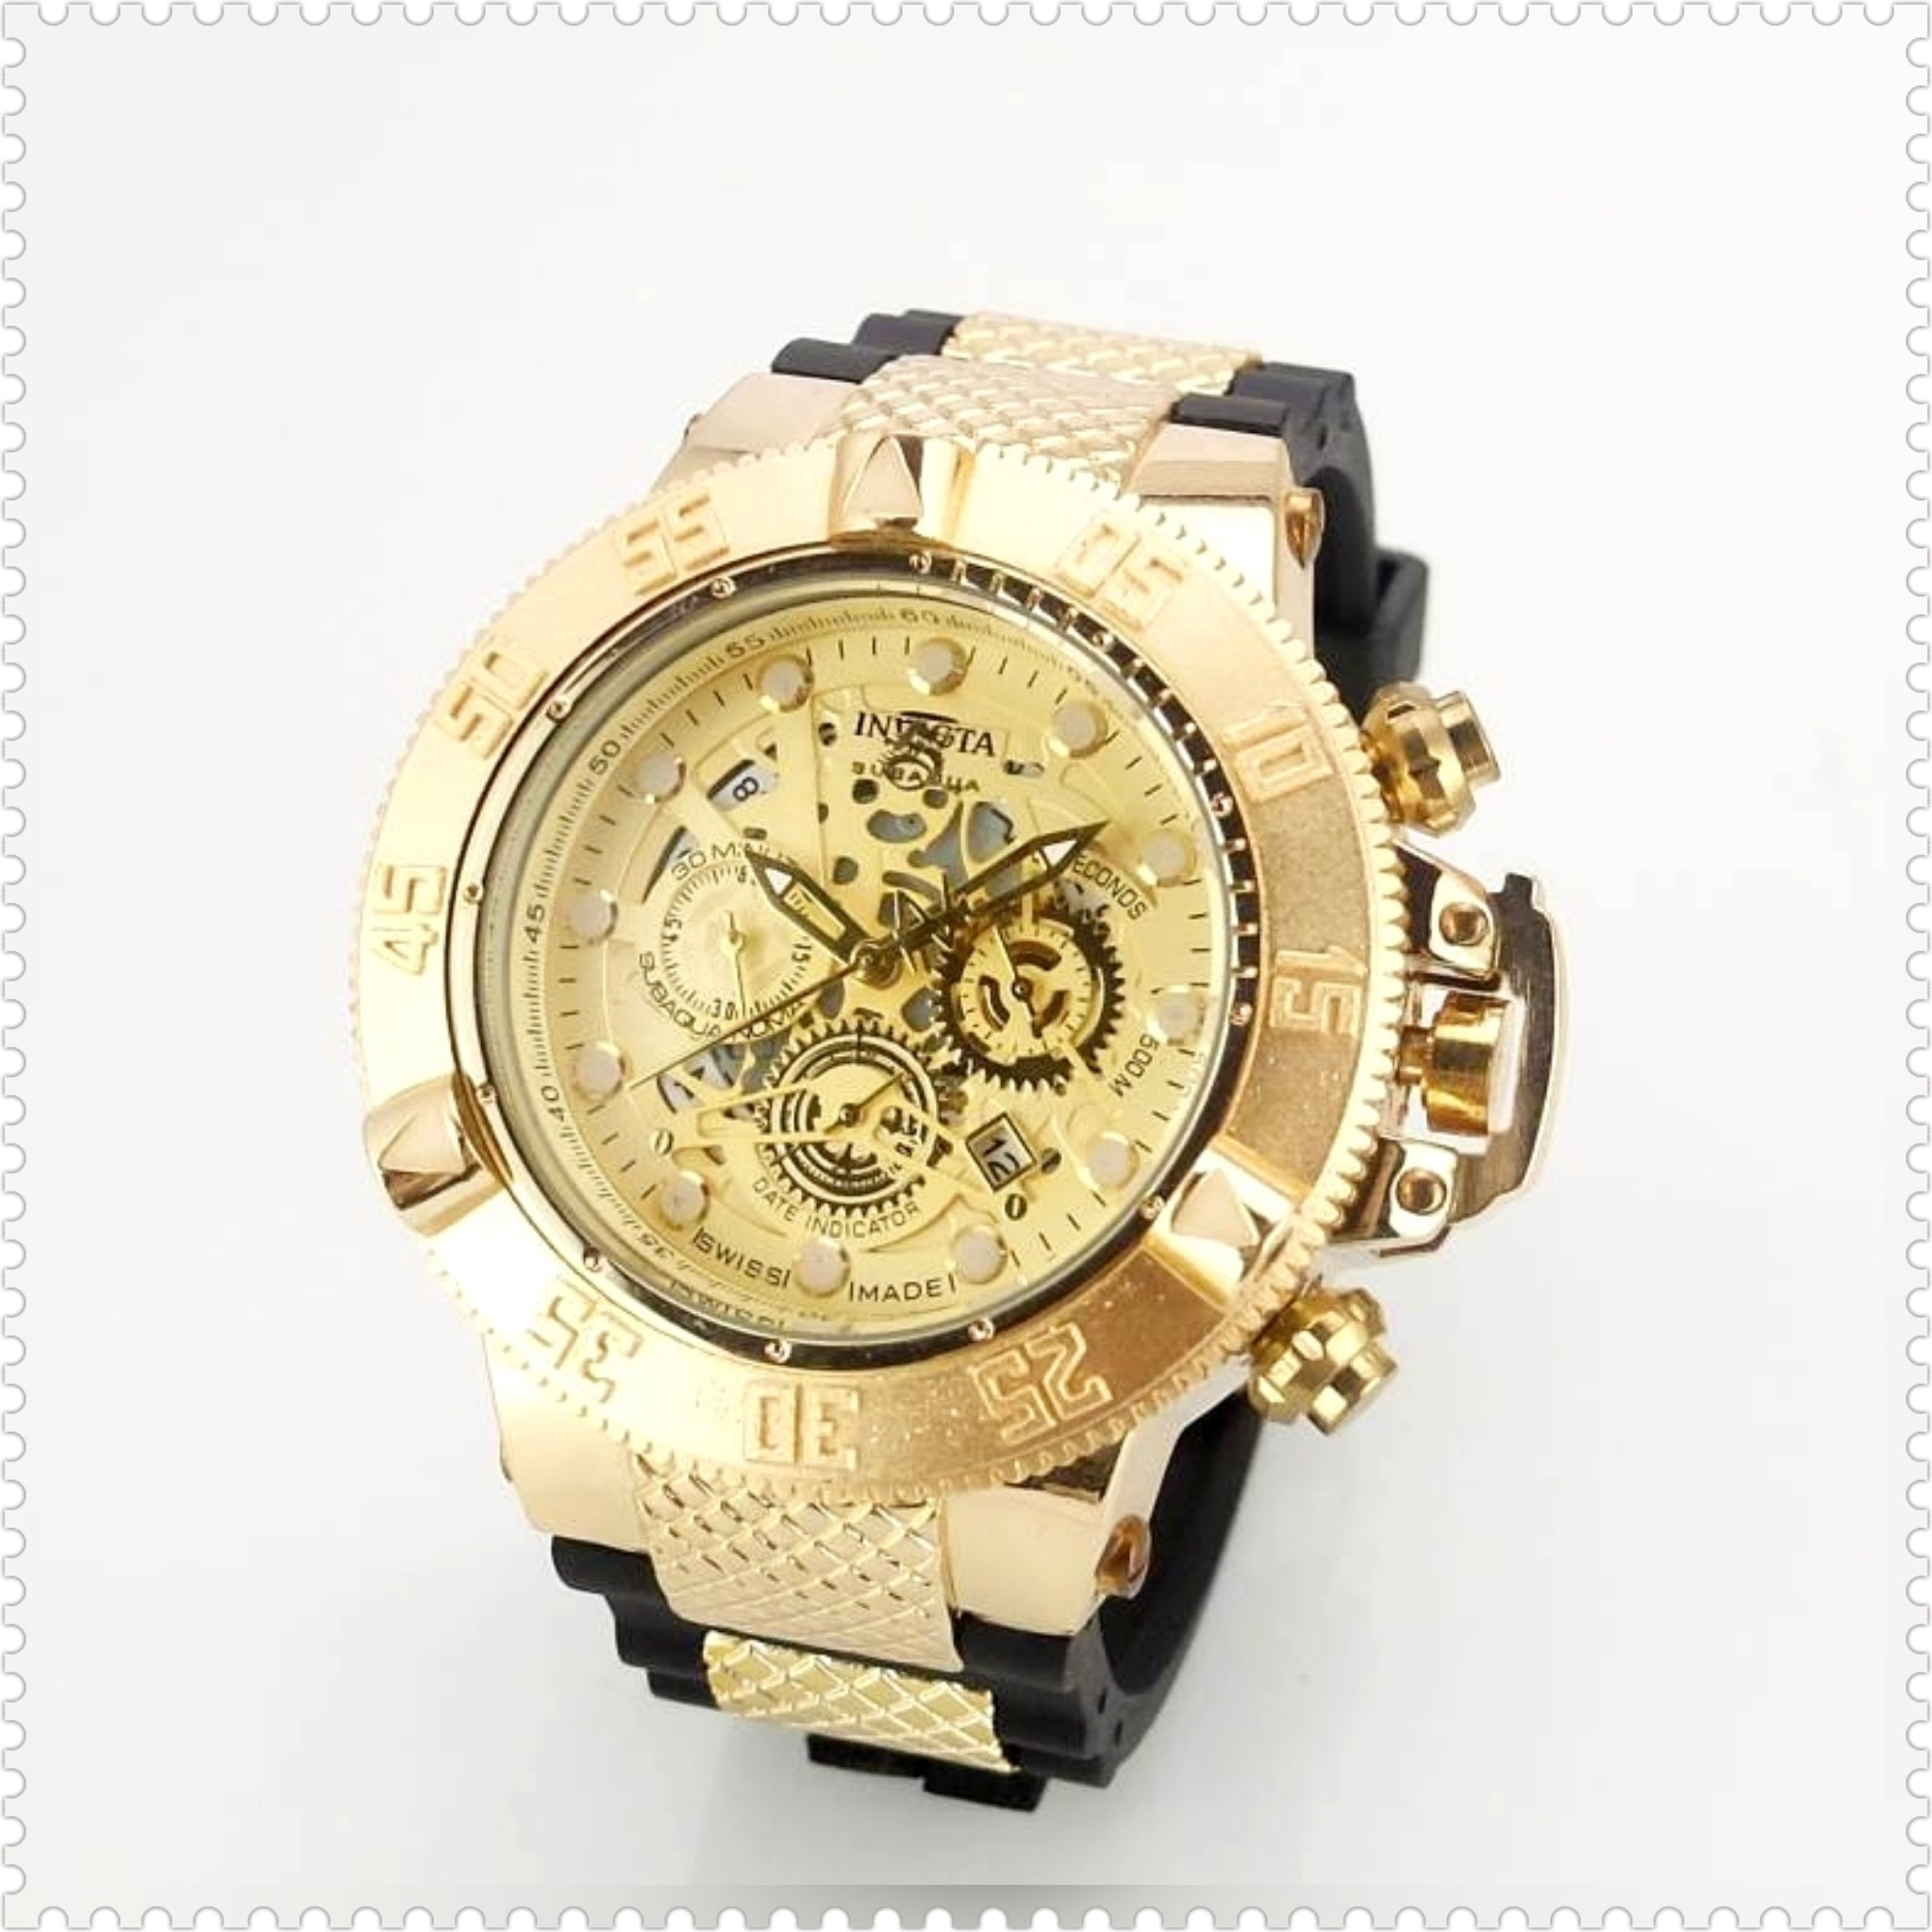 Invicta Sub Aqua Gold Tone Silicone Band Mens Watch Ship Free - HW-WATCHEZ HWWATCHEZ.COM